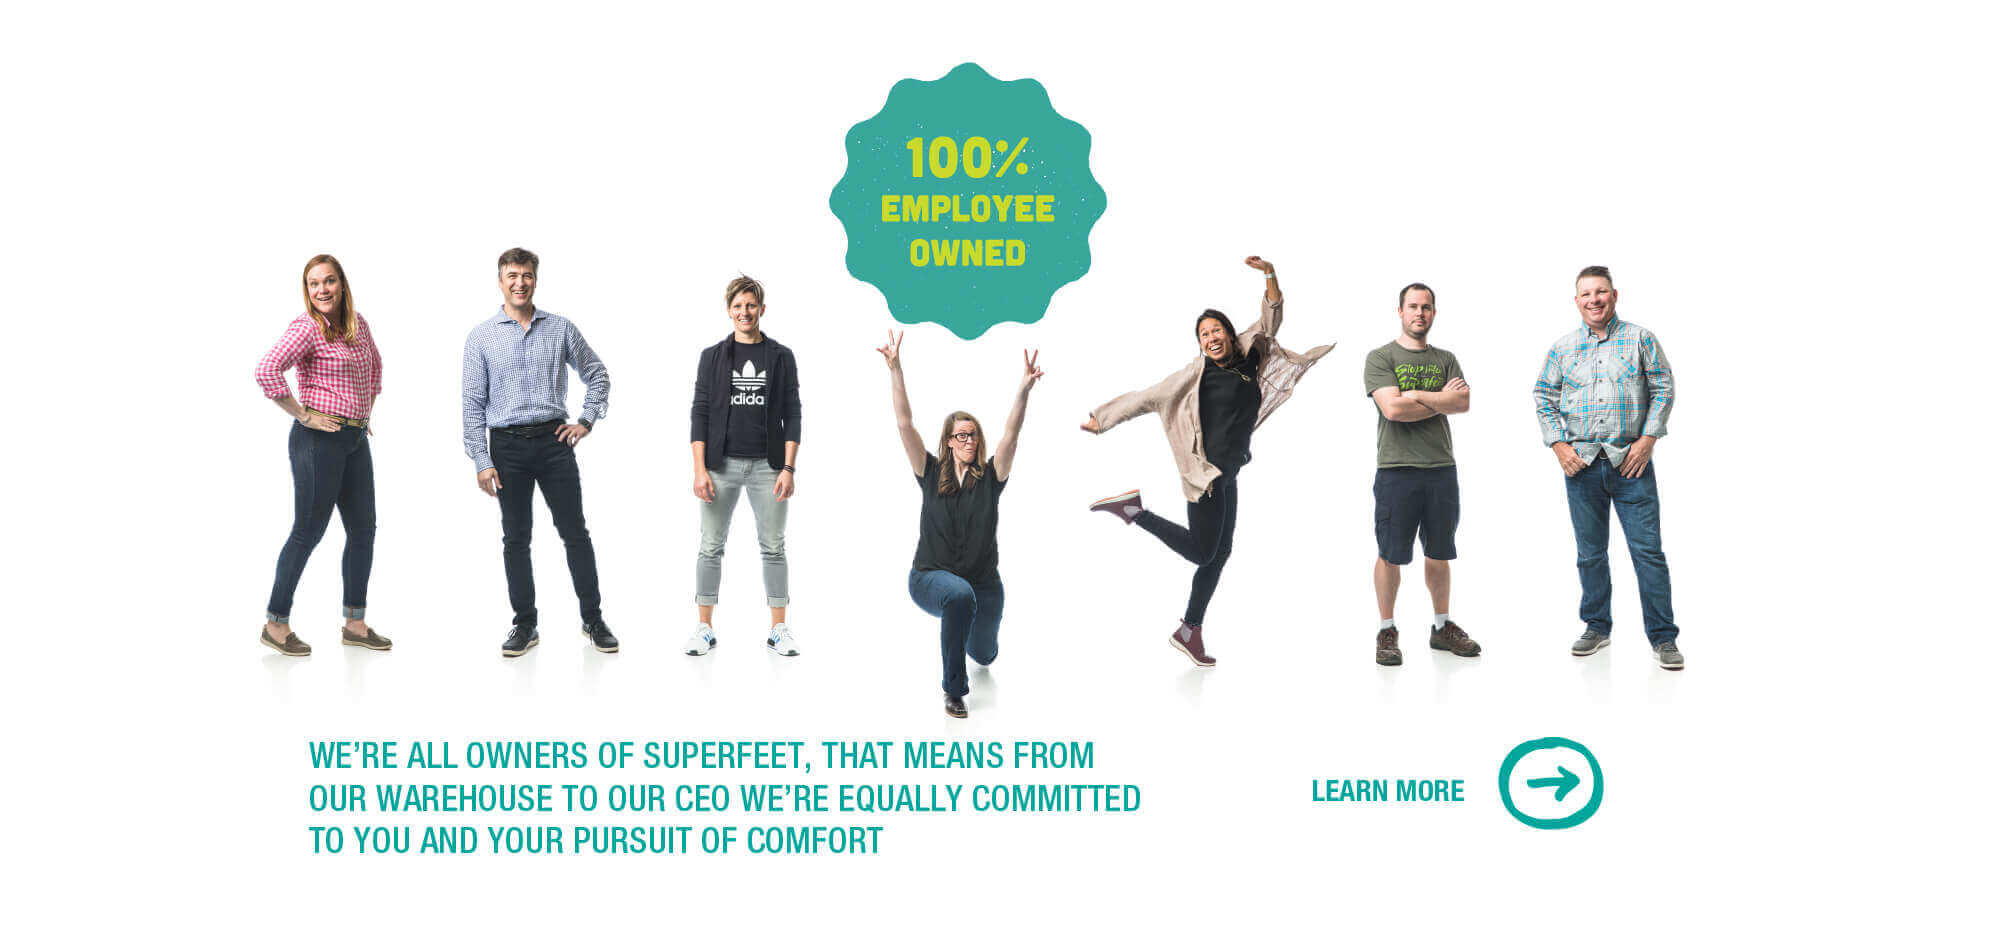 We're all owners at Superfeet. That means from the warehouse to our CEO, we're equally committed to you and your pursuit of comfort.